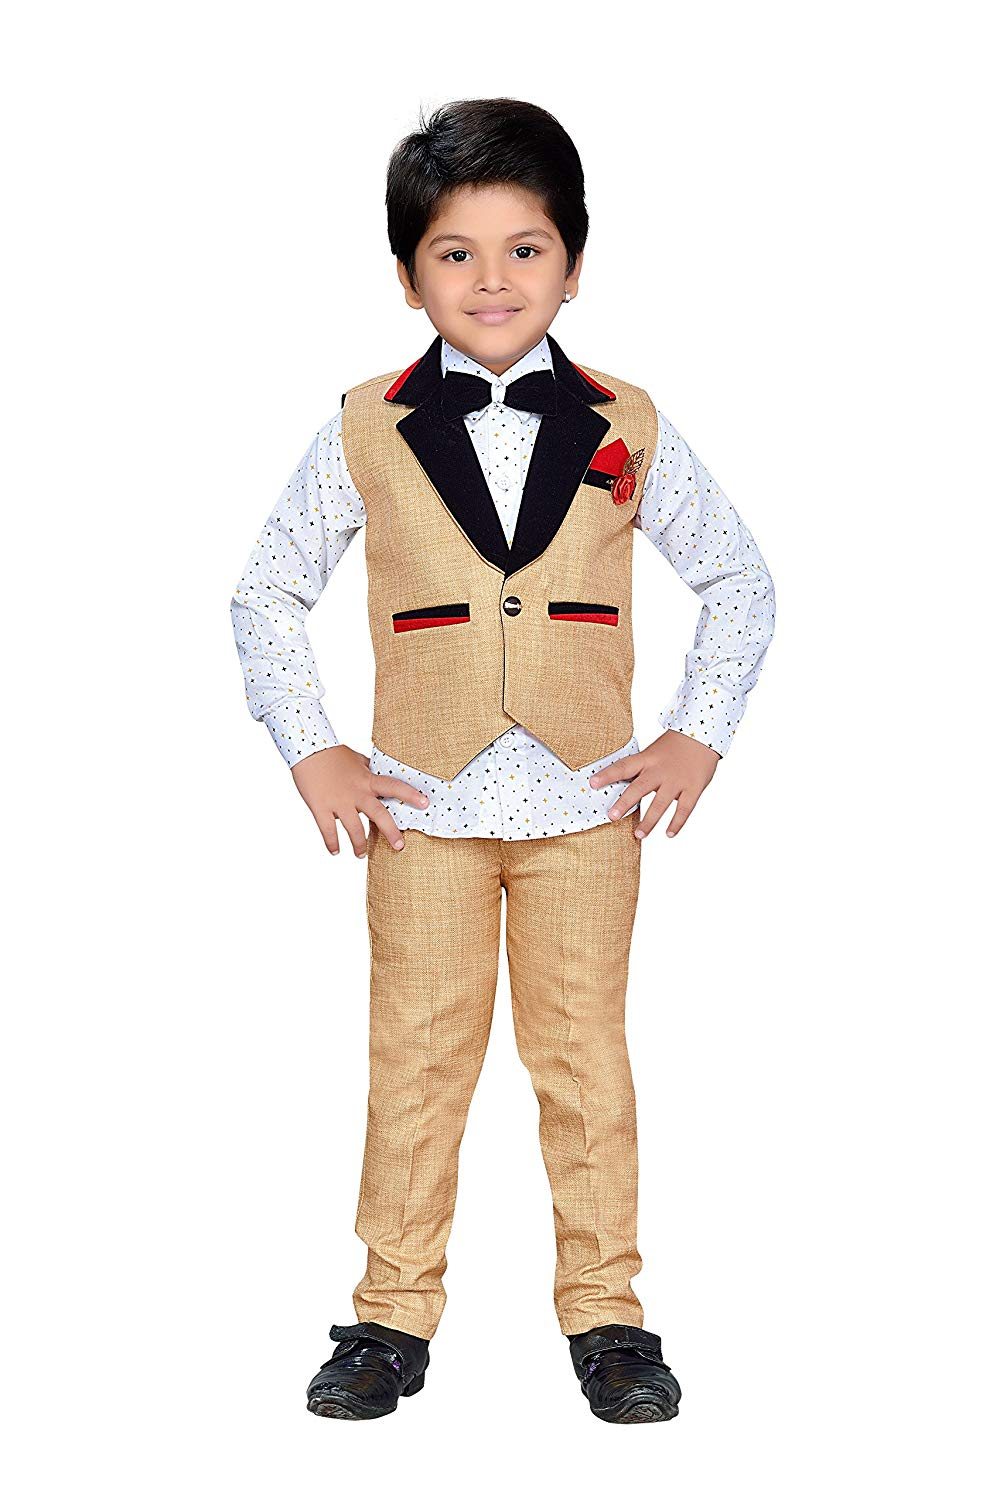 4c72fdbeb5 AJ Dezines Kids Indian wear Bollywood Style Shirt Waistcoat and Pant  Clothing Set for Boys